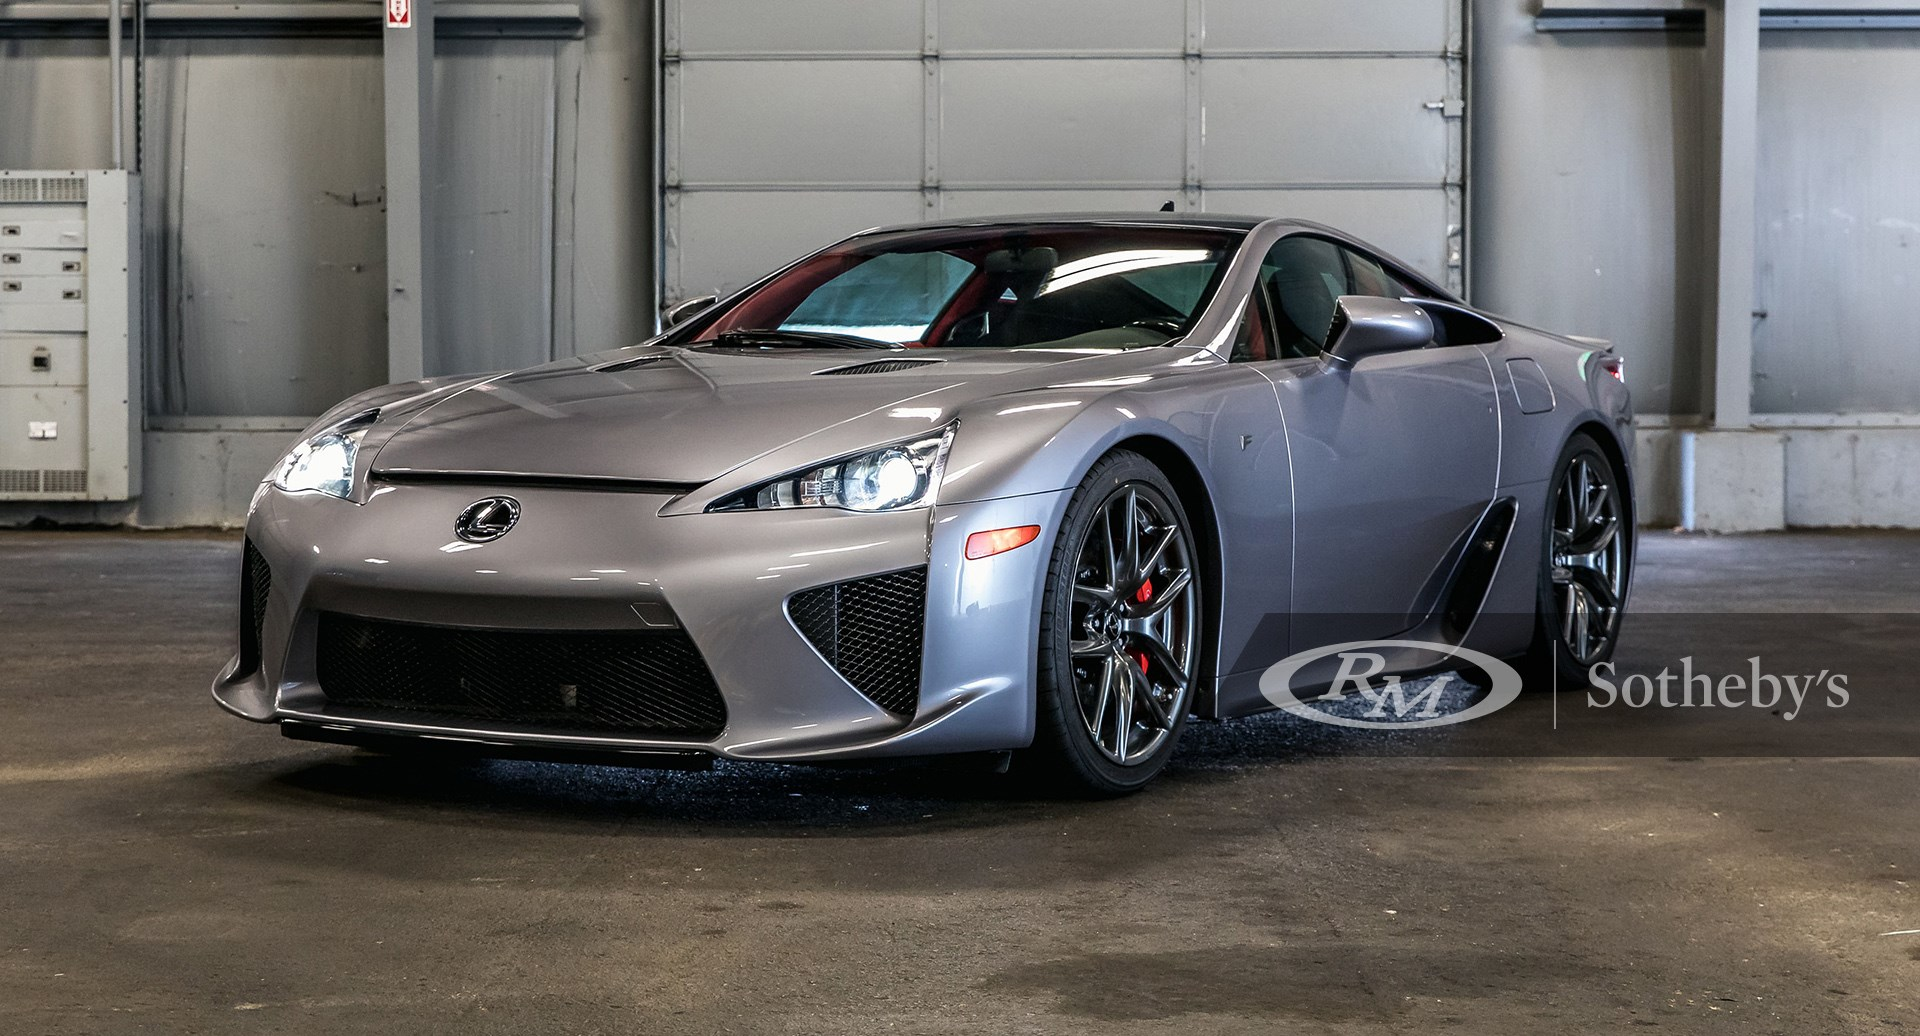 2012 Lexus LFA available at RM Sotheby's Amelia Island Live Auction 2021